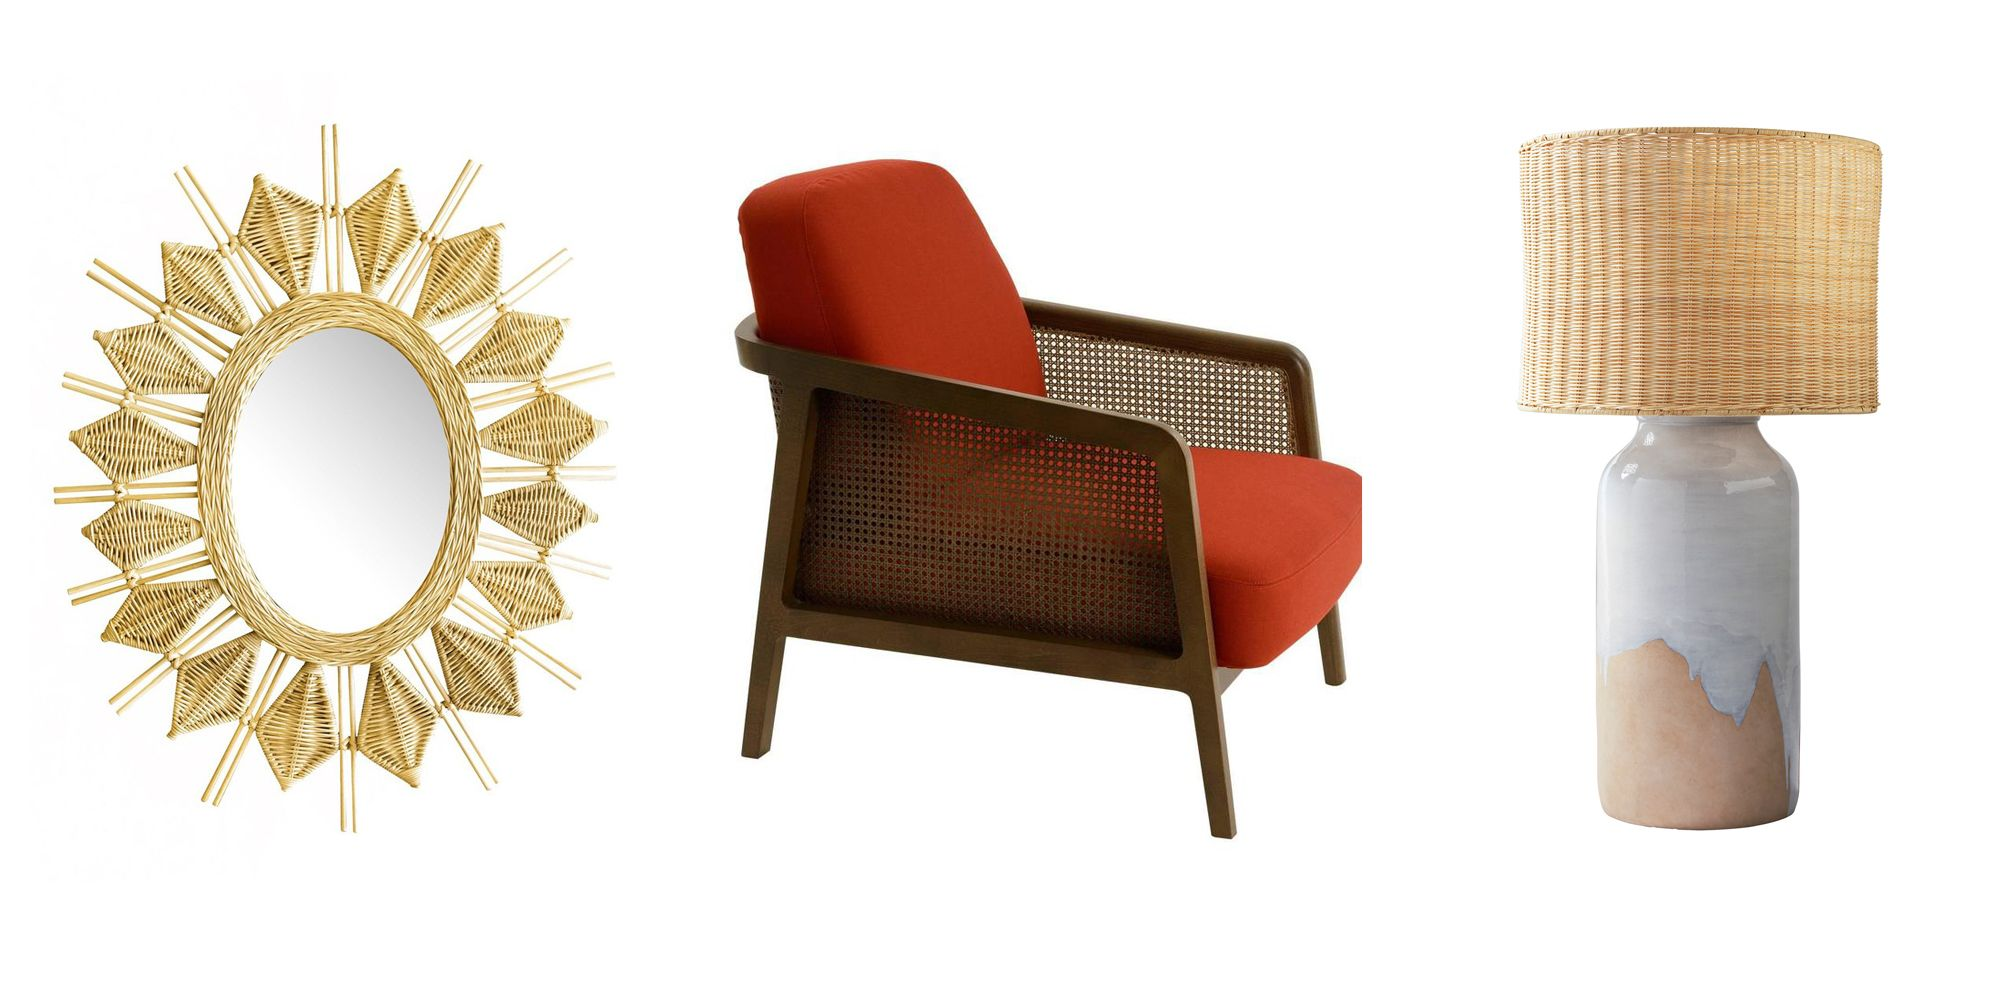 wicker furniture  sc 1 st  Elle Decor & Trend Alert: Year-Round Wicker Furniture u2014 Indoor Wicker Furniture